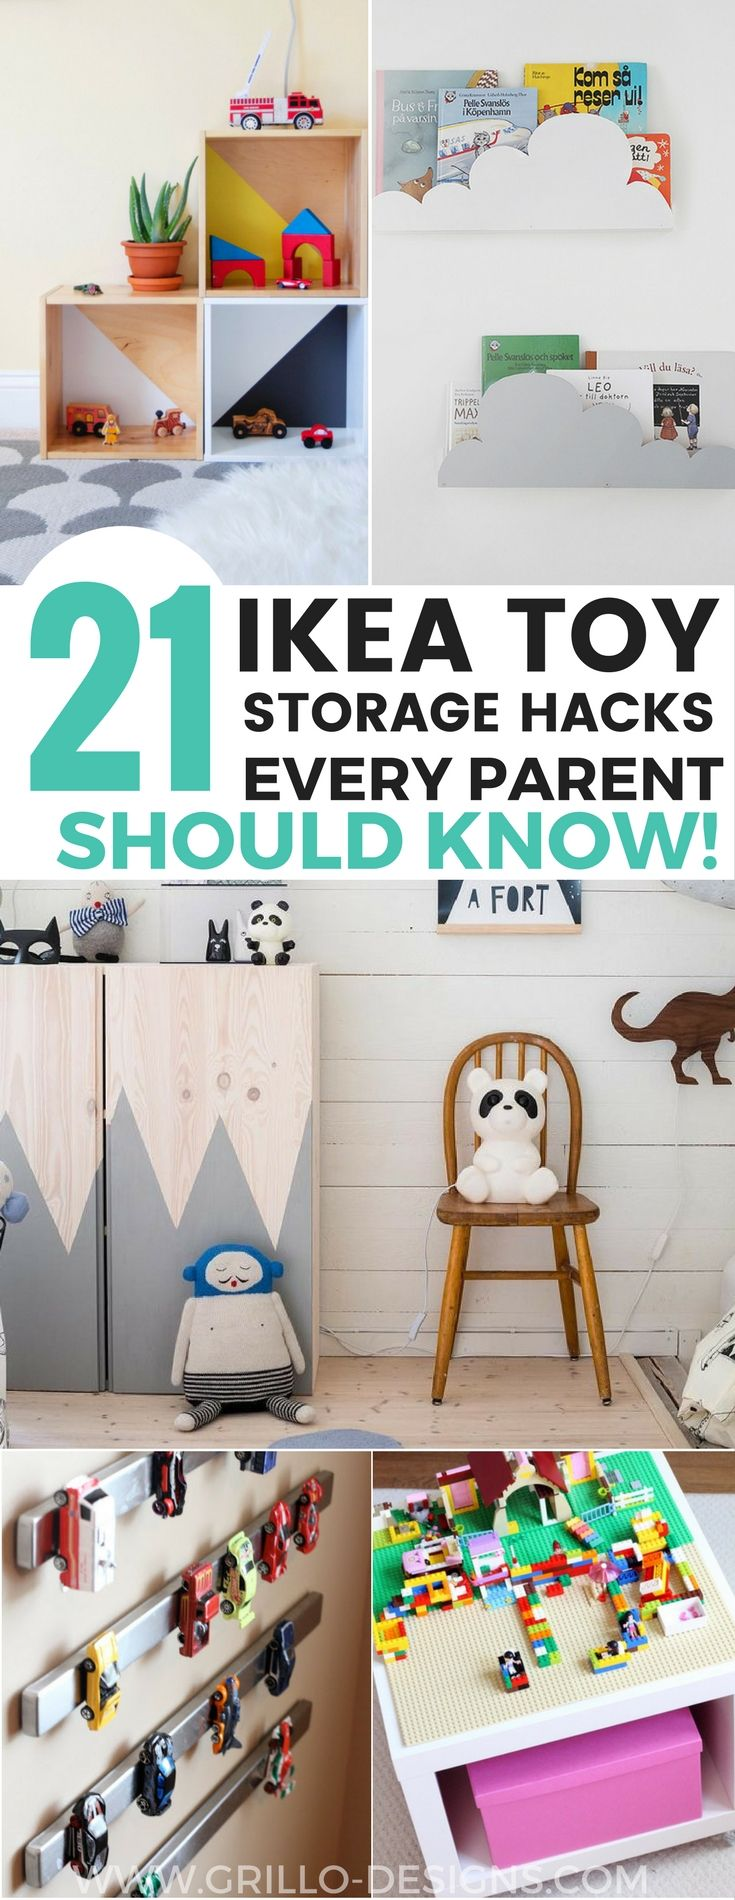 21 IKEA Toy Storage Hacks Every Parent Should Know!